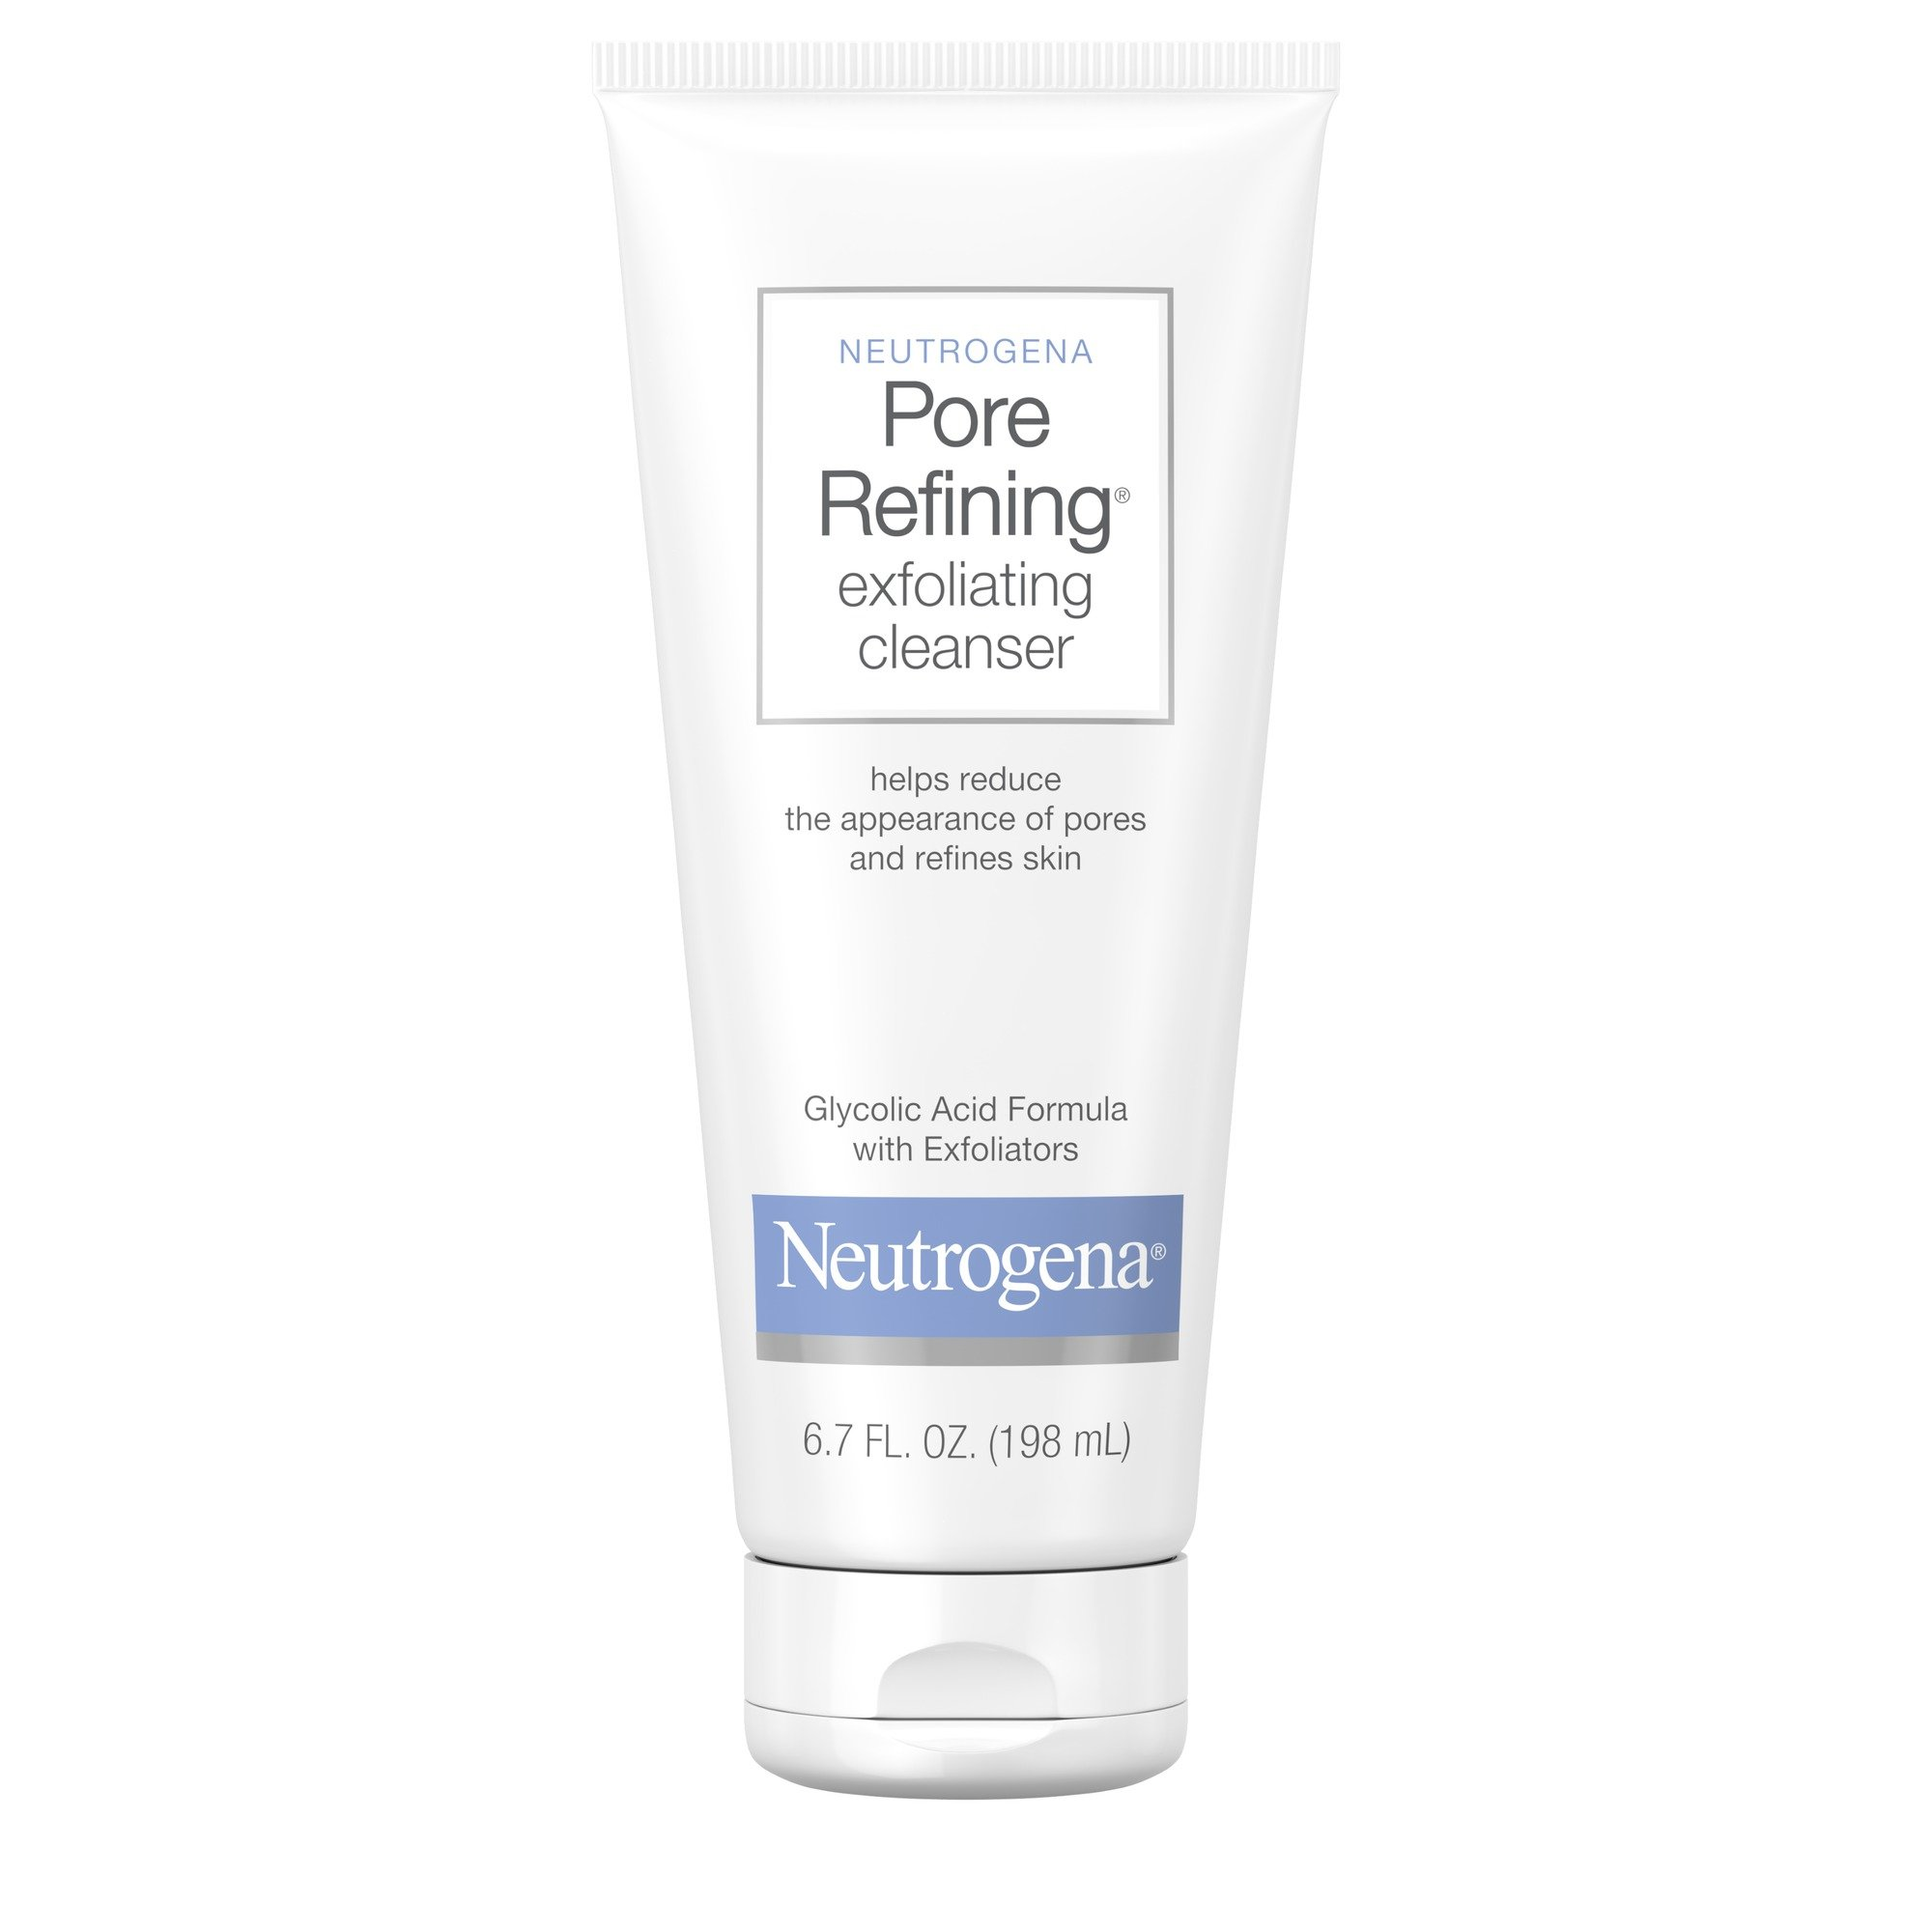 Neutrogena Pore Refining Daily Cleanser